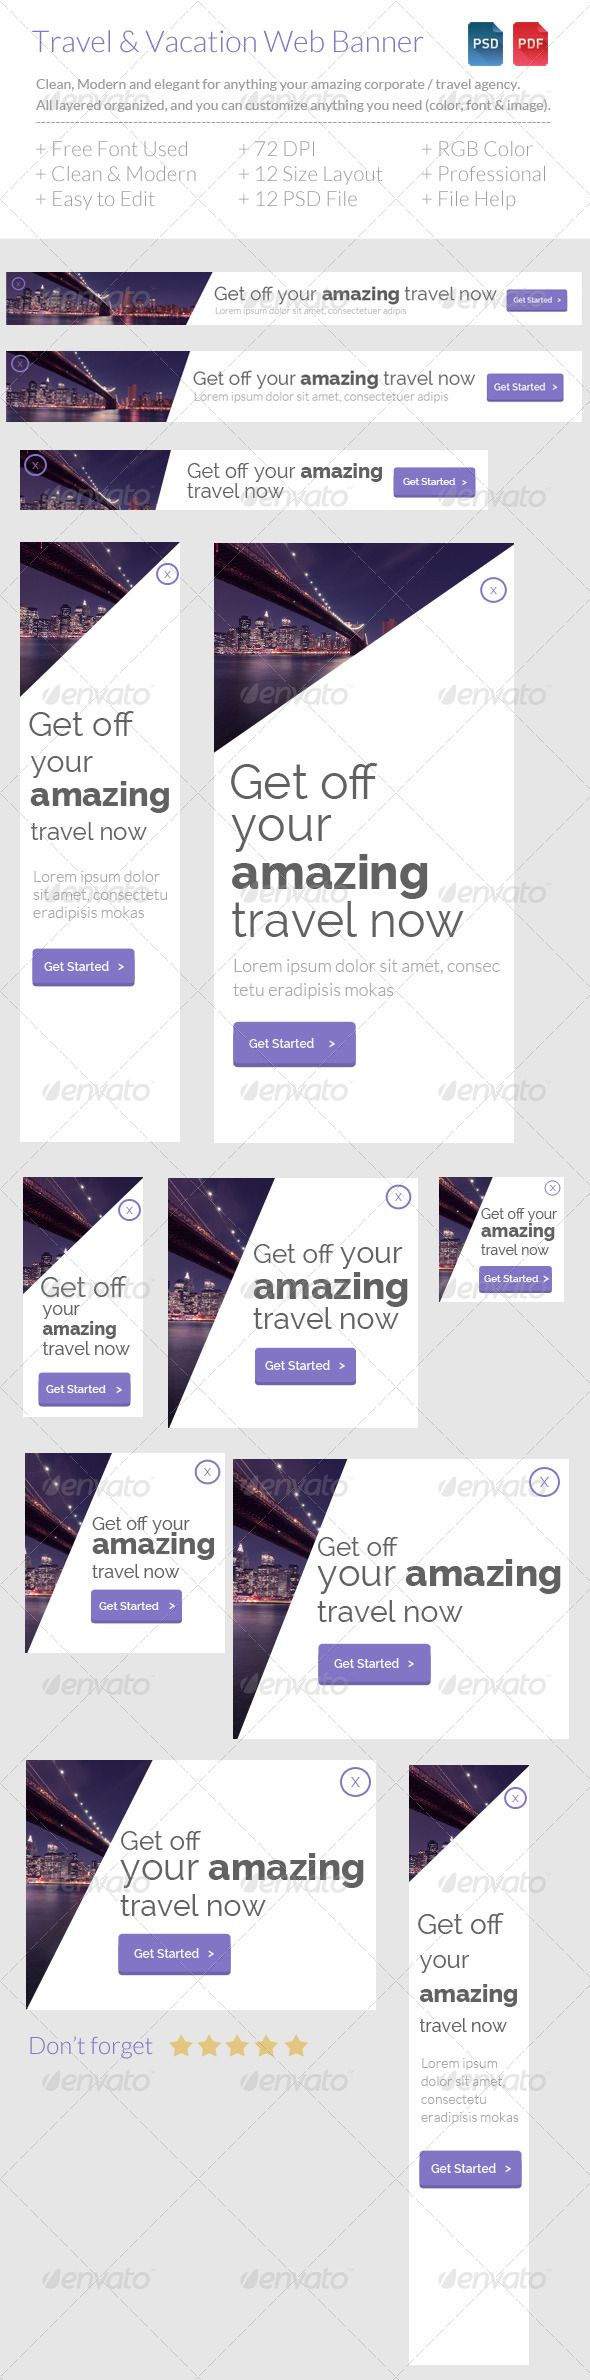 96 best Web banners images on Pinterest | Editorial design, Page ...